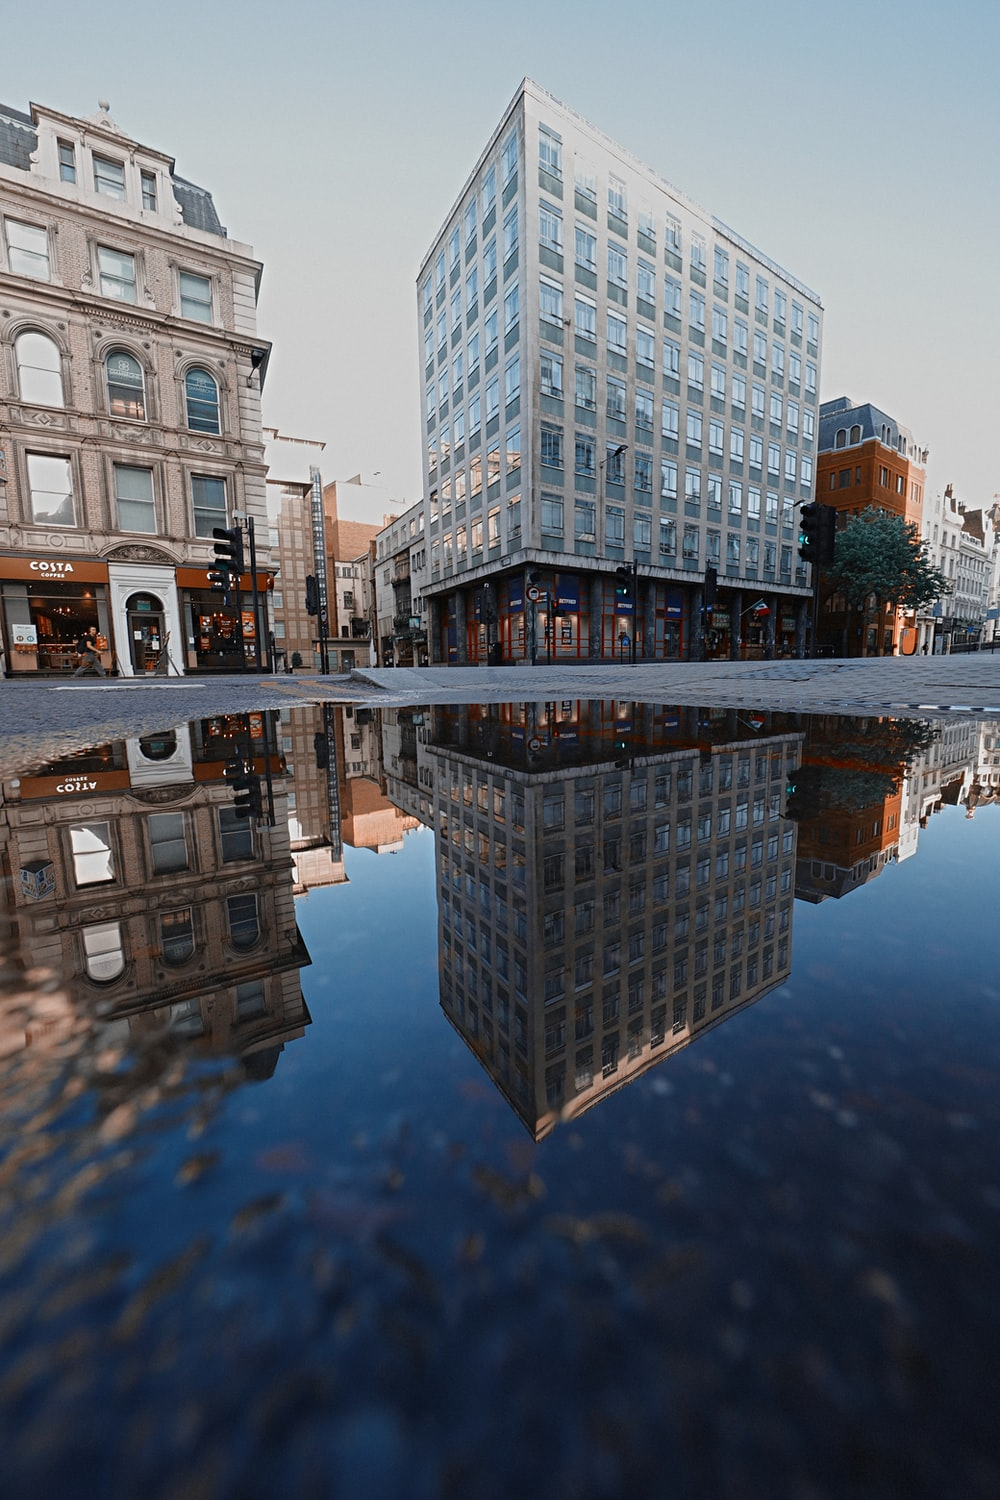 reflection of building on water during daytime